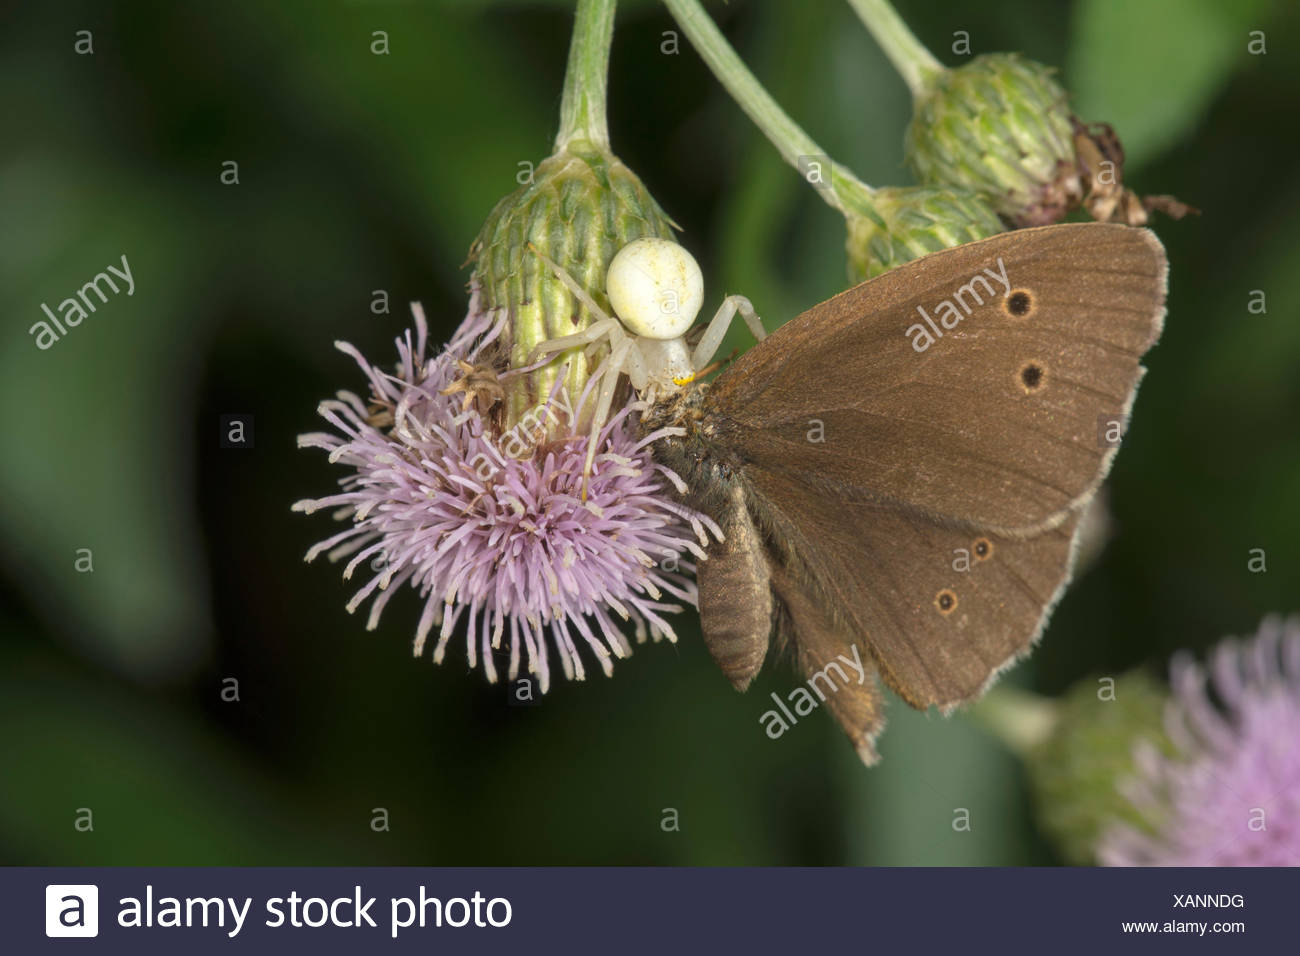 Crab spider (Misumena vatia) with Ringlet (Aphantopus hyperantus) as prey on creeping thistle, Baden-Württemberg, Germany - Stock Image